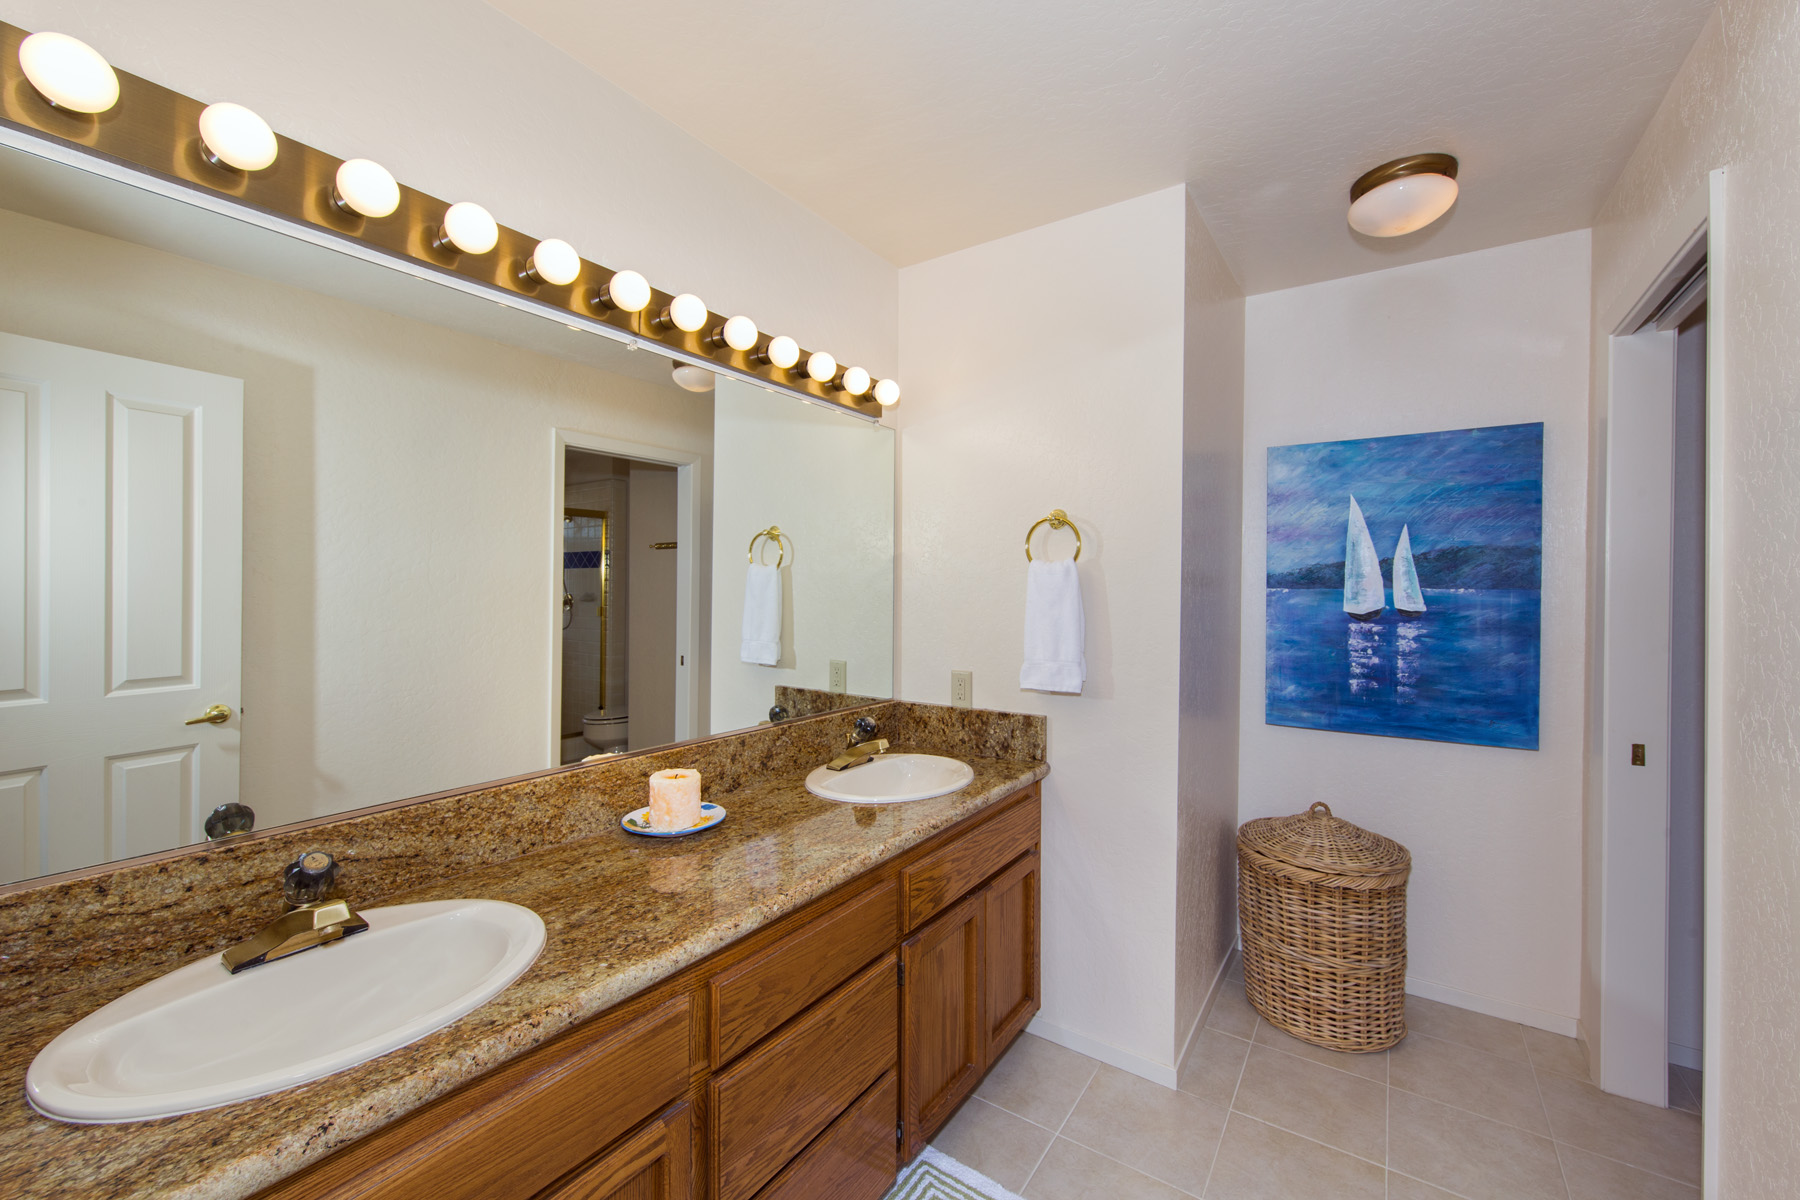 Master Bath is open and luxury.